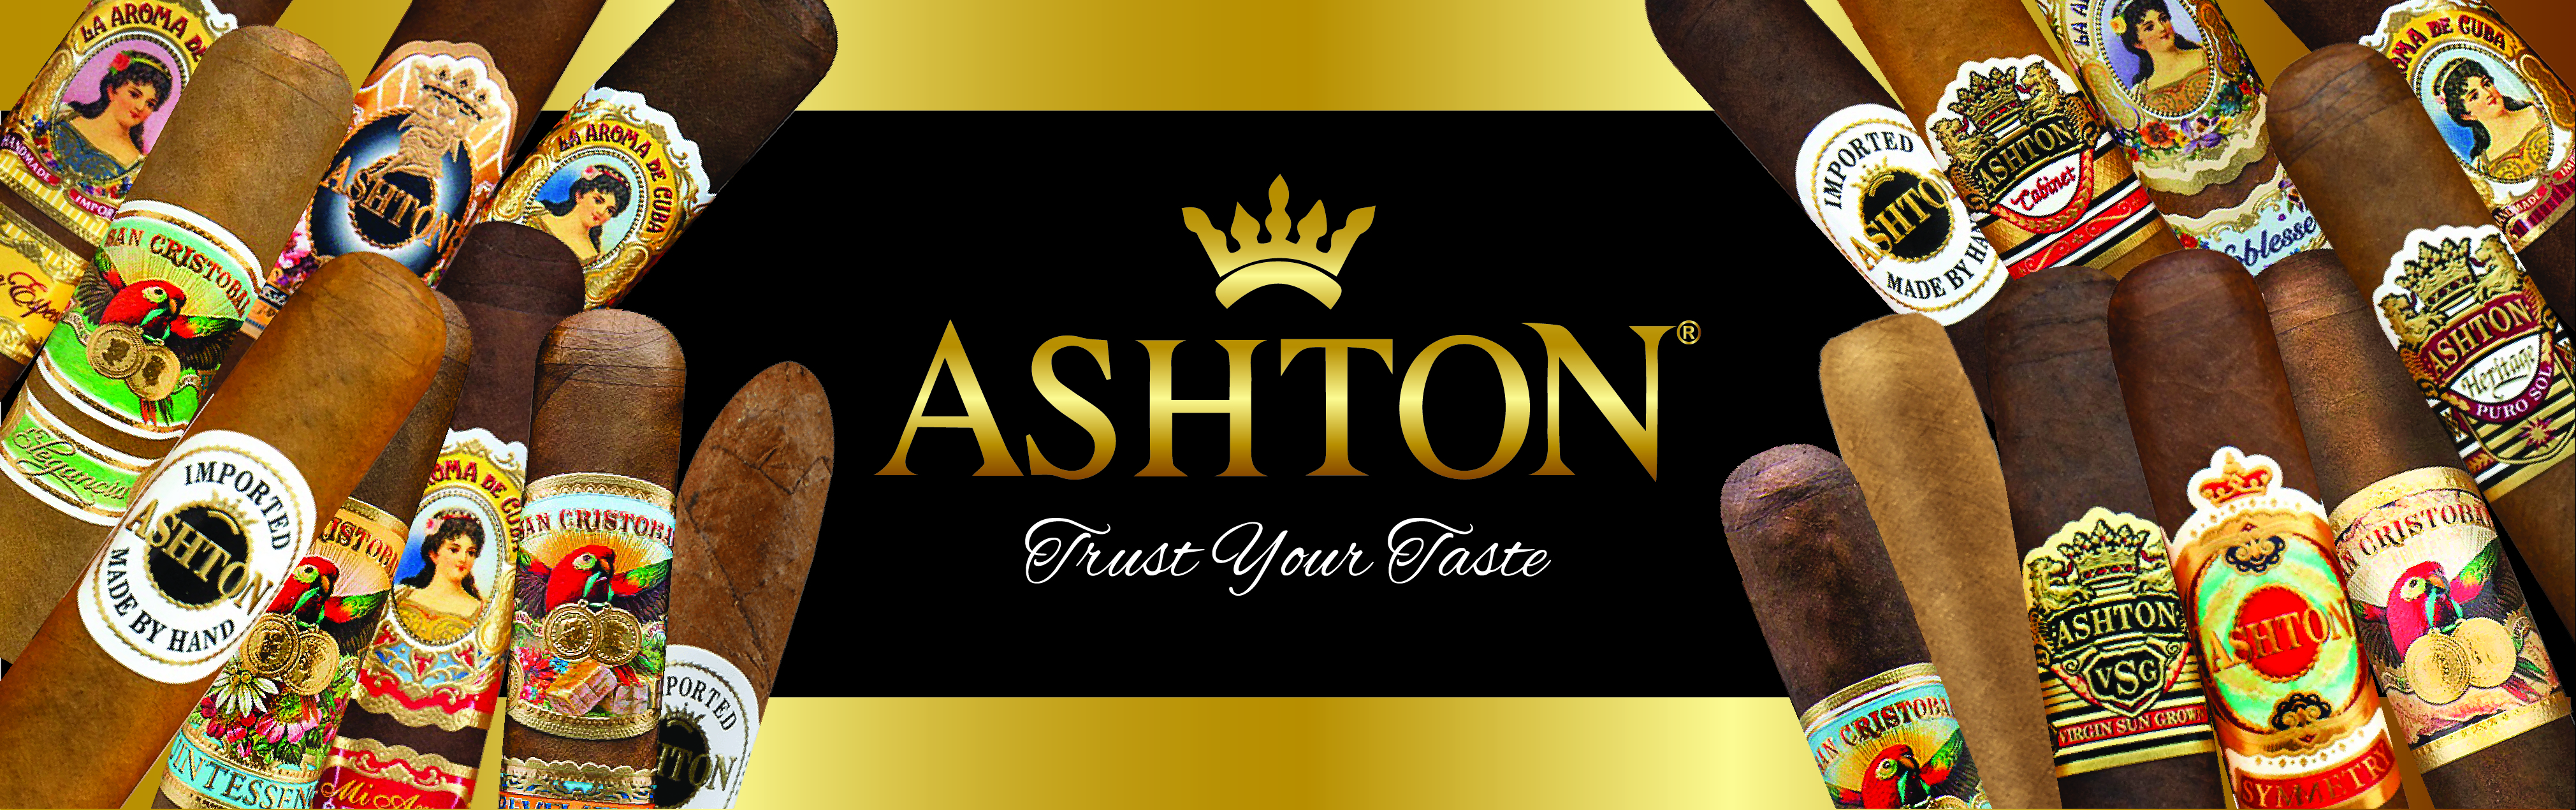 Ashton Cigars | All you need to know